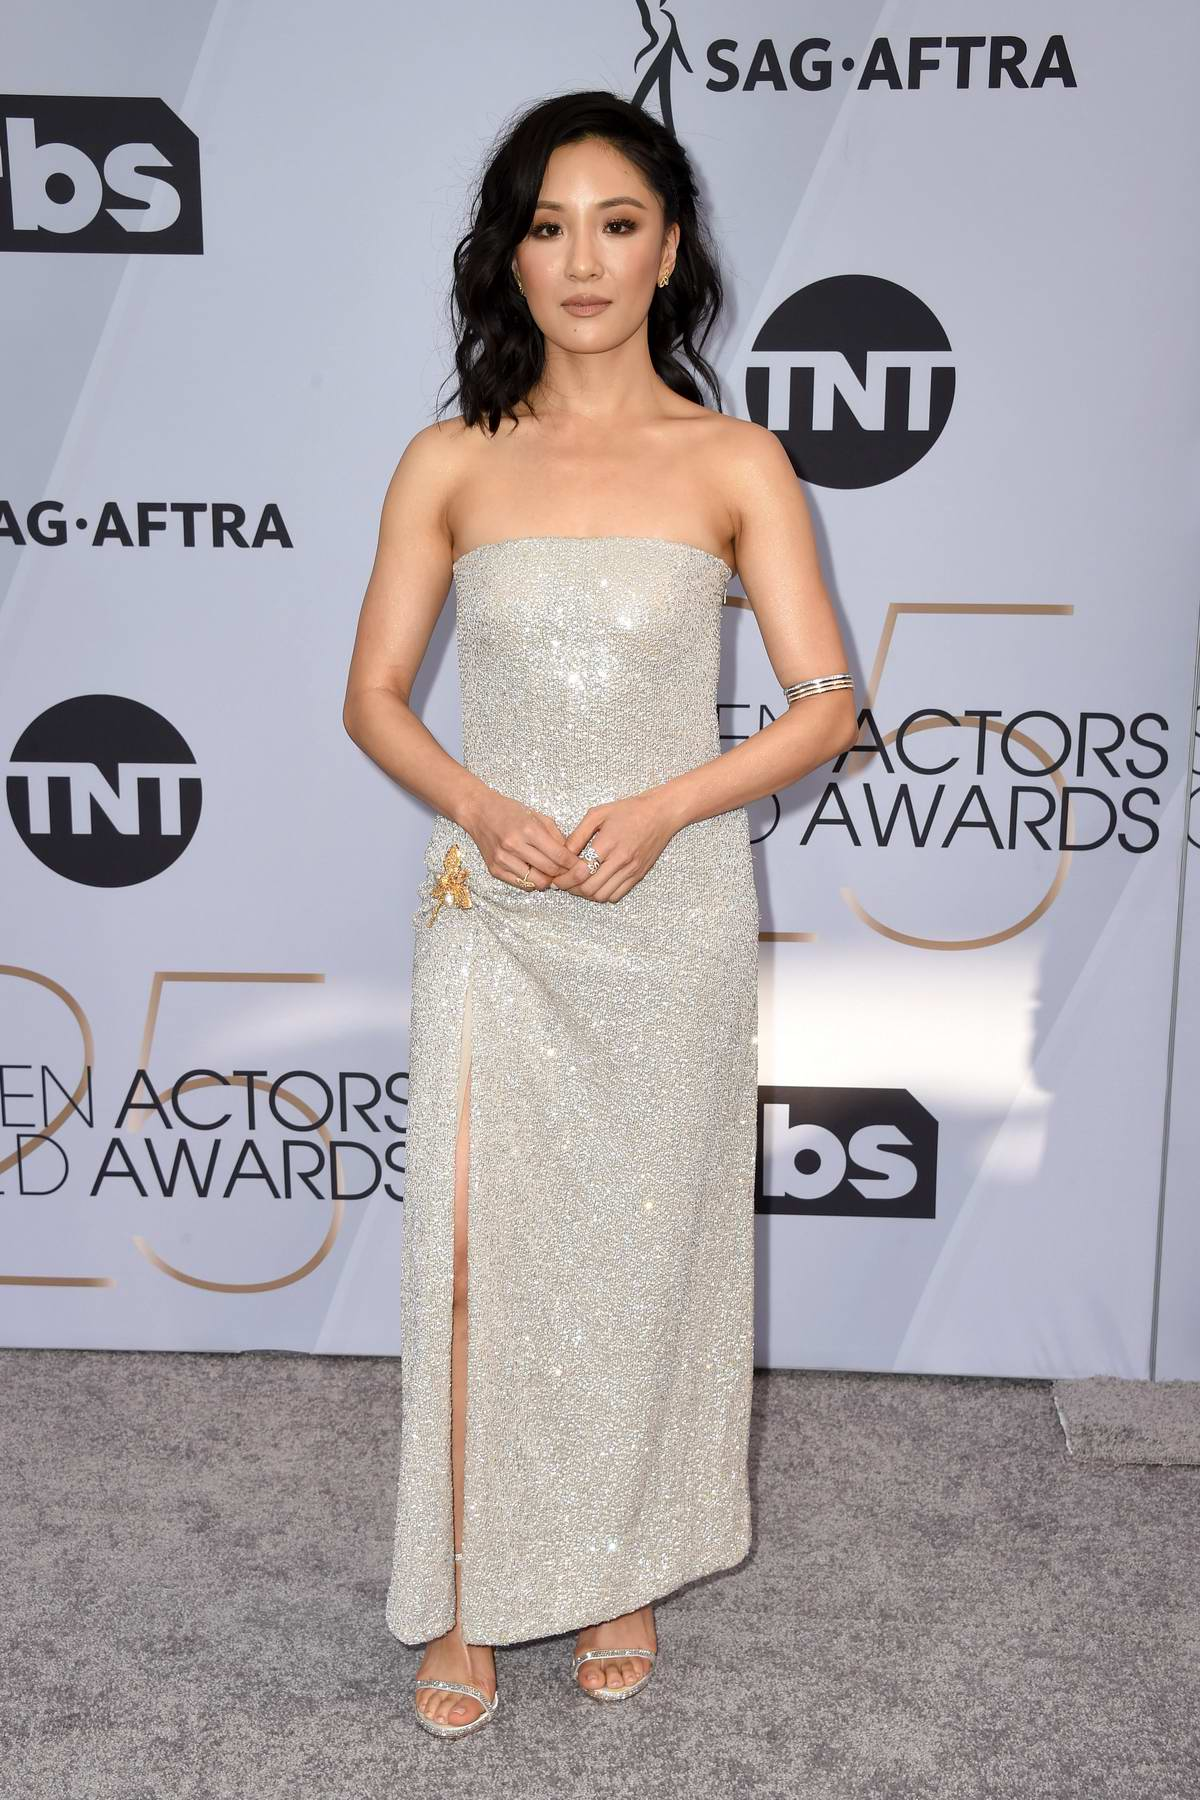 Constance Wu attends the 25th Annual Screen Actors Guild Awards (SAG 2019) at the Shrine Auditorium in Los Angeles